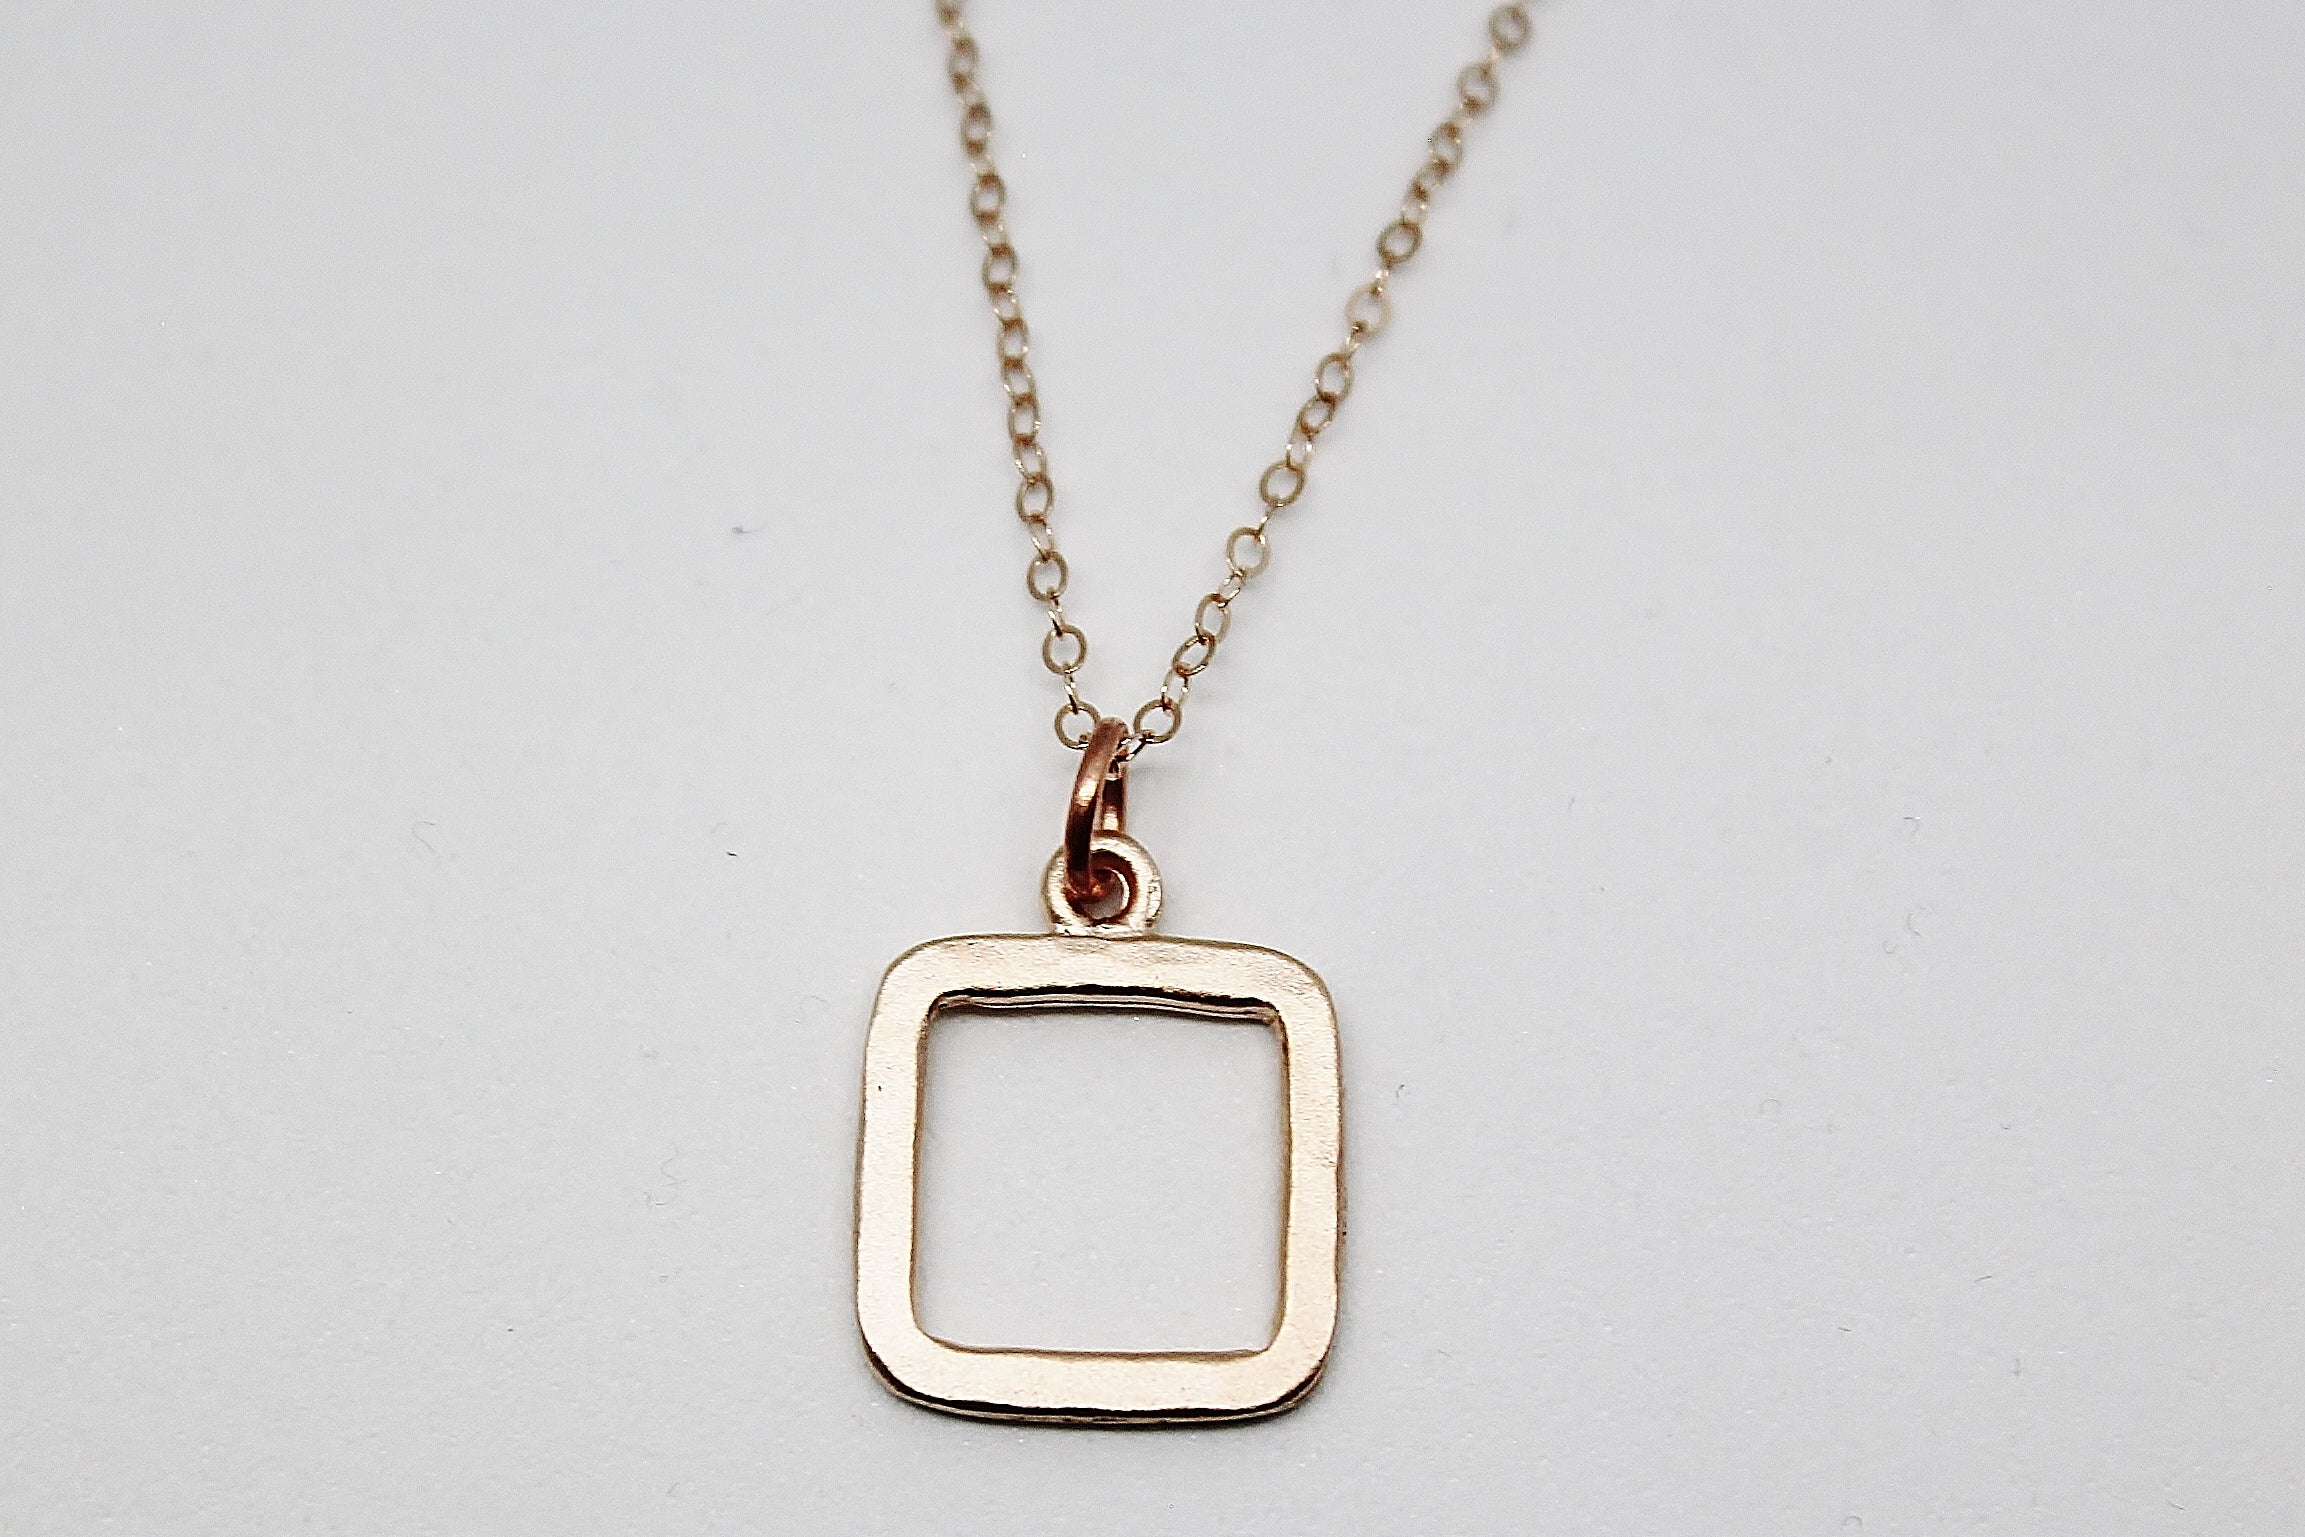 ROSE GOLD SMALL SQUARE PENDANT